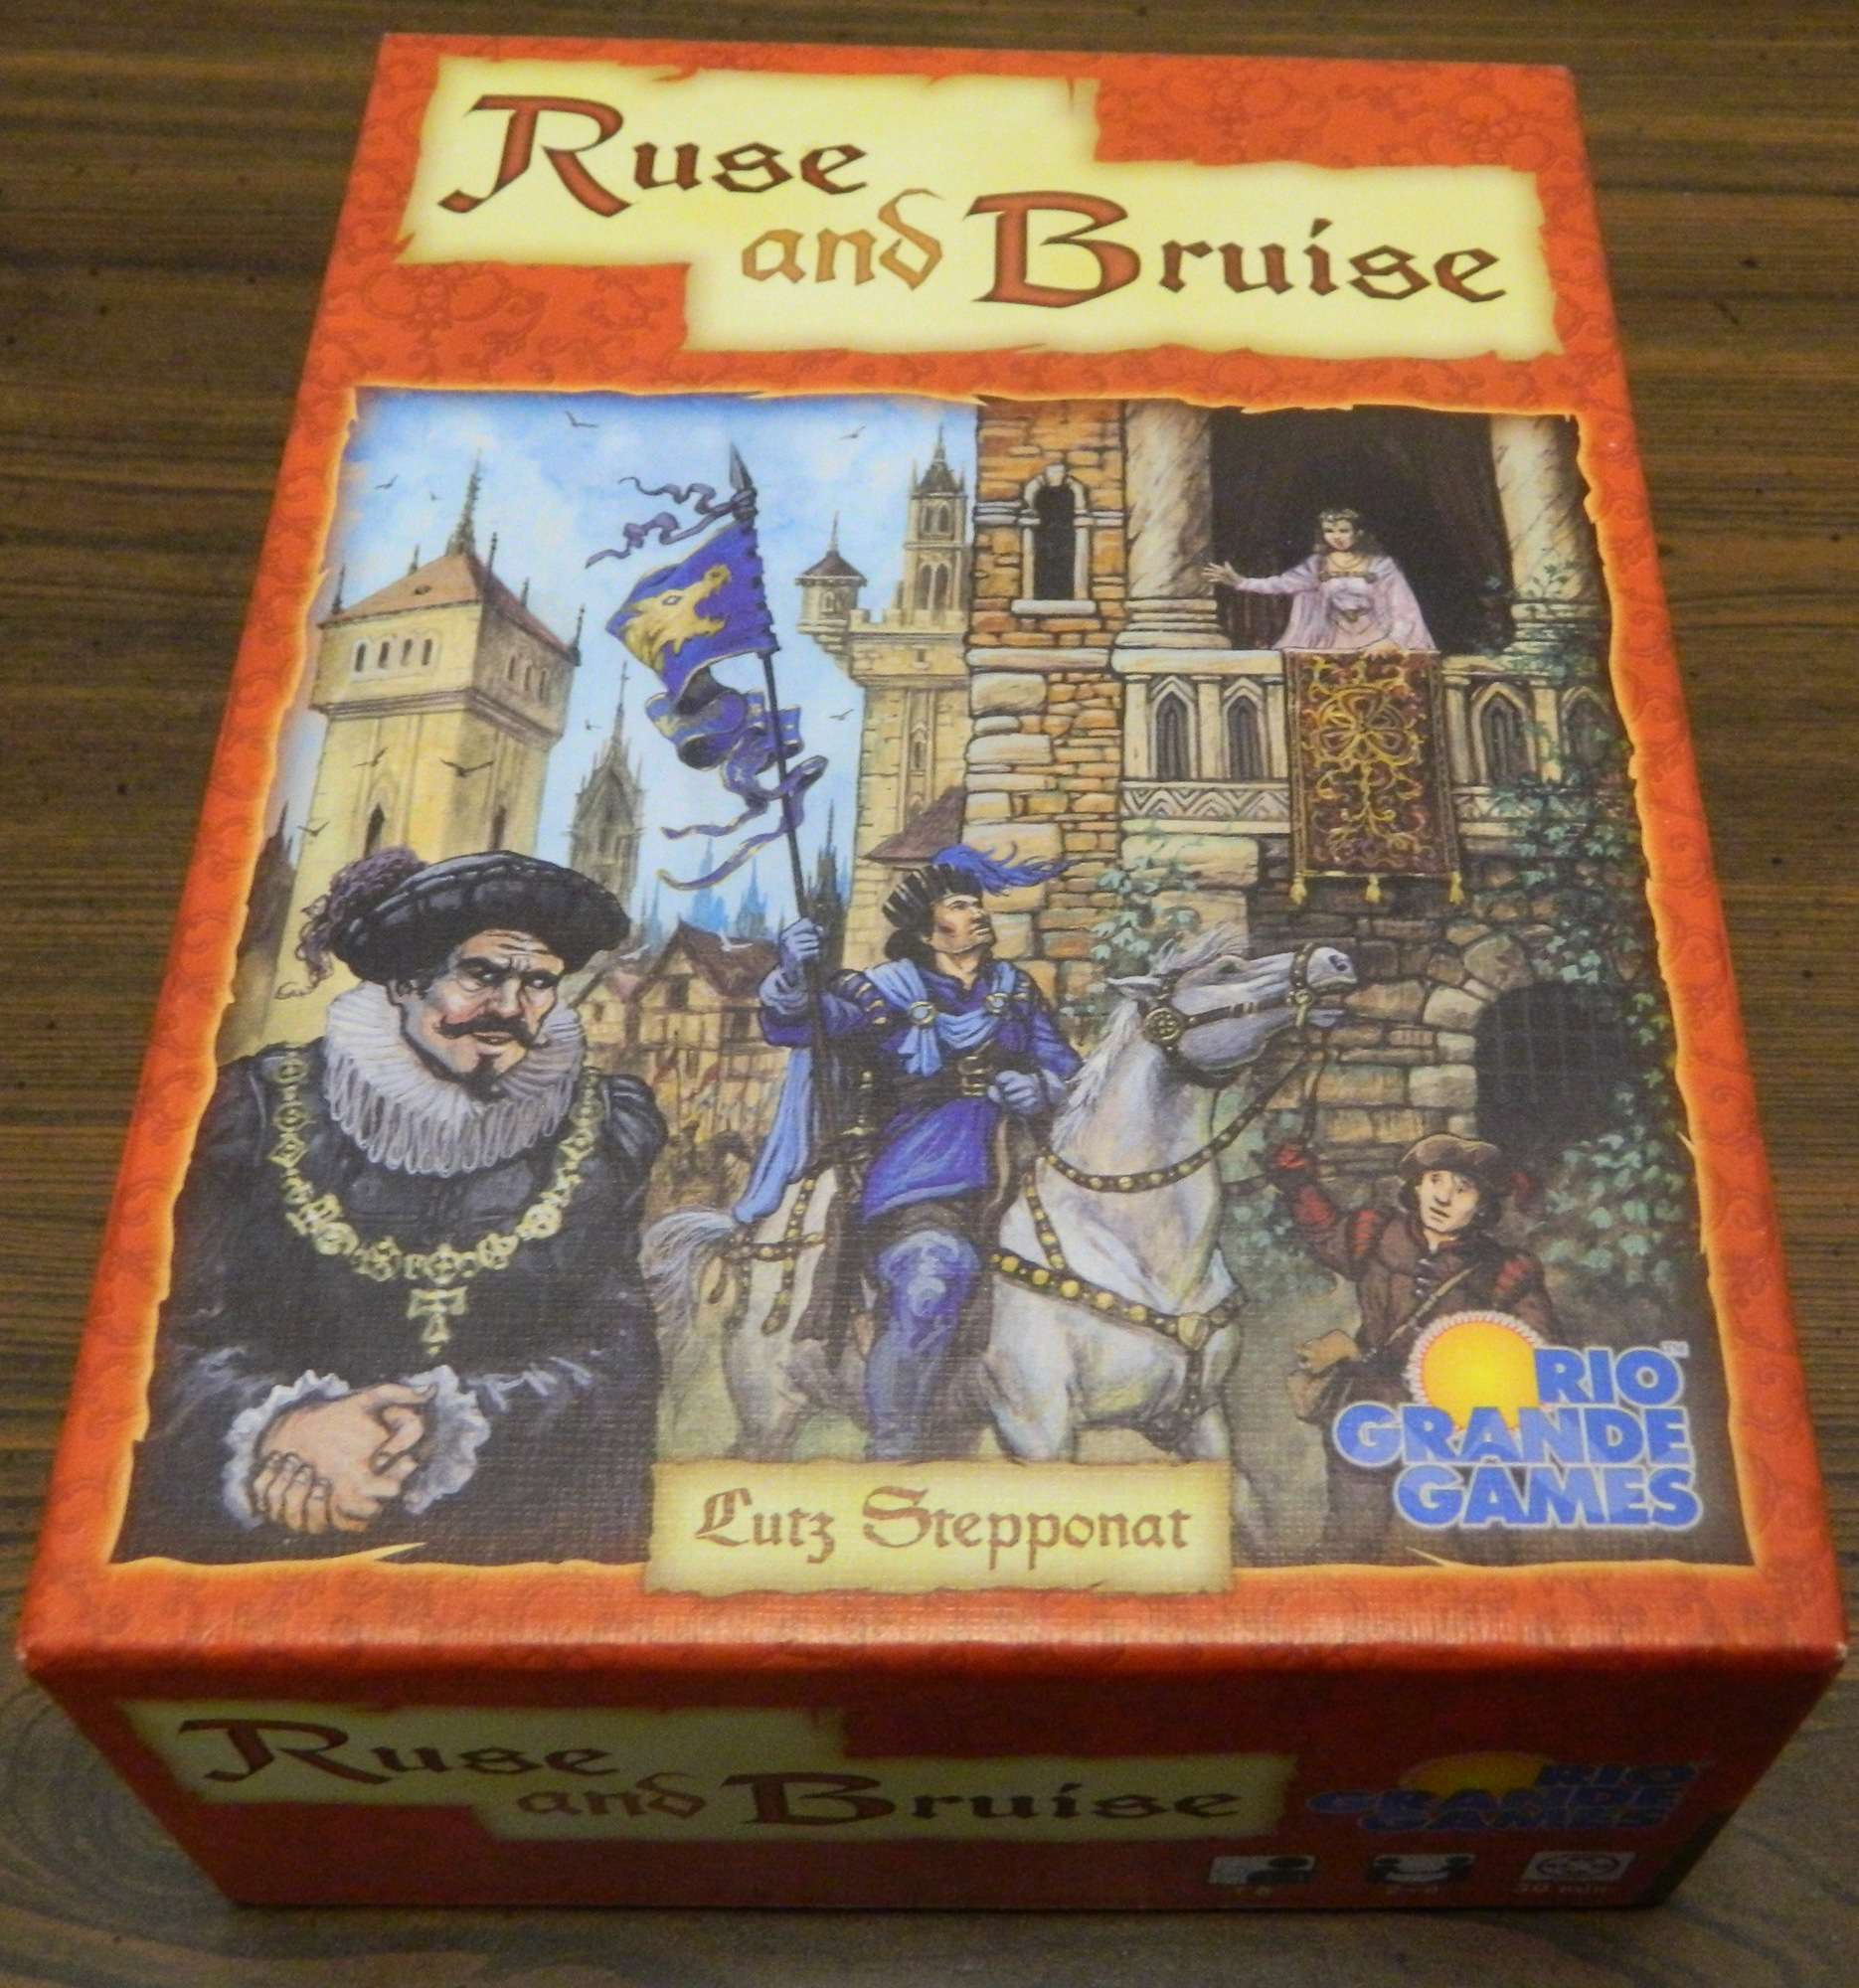 Box for Ruse and Bruise